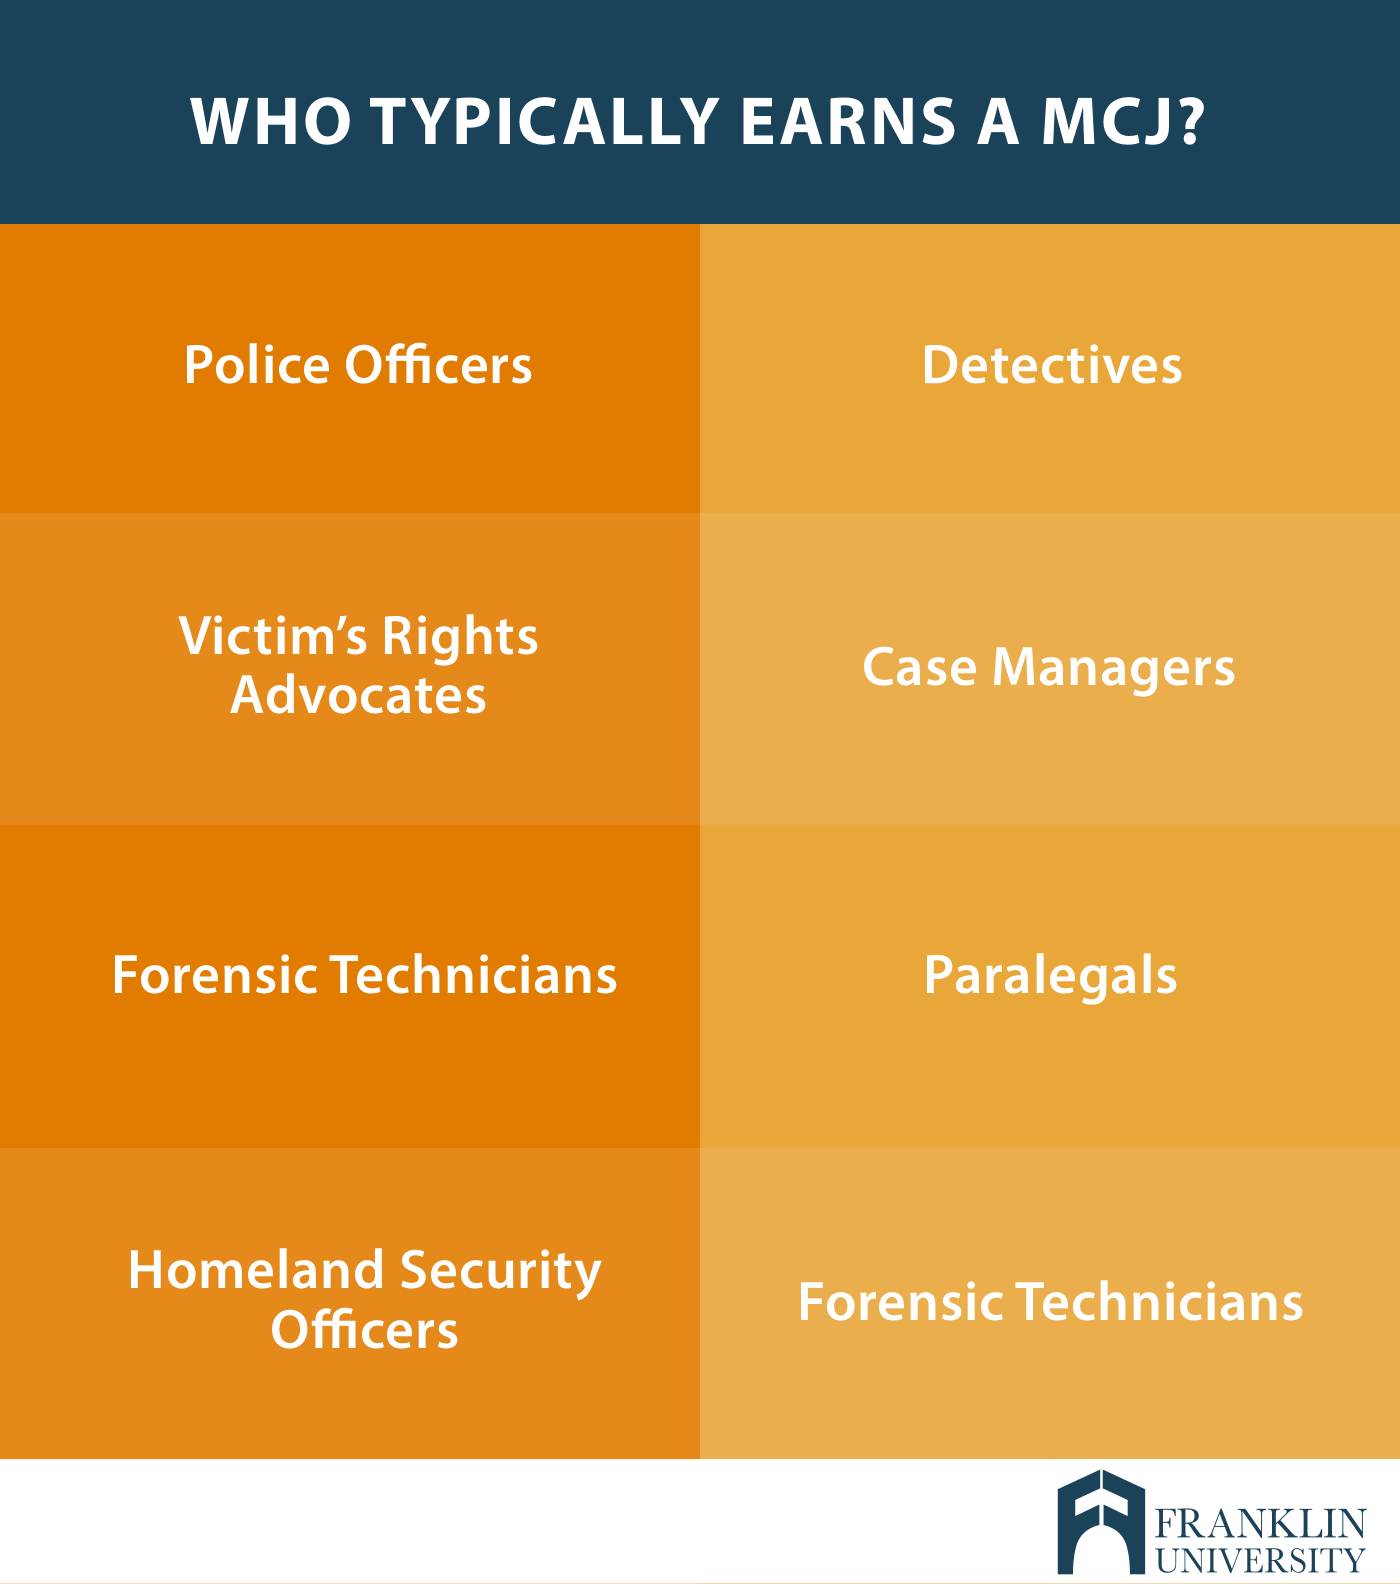 graphic describes the individuals who typically earn a MCJ